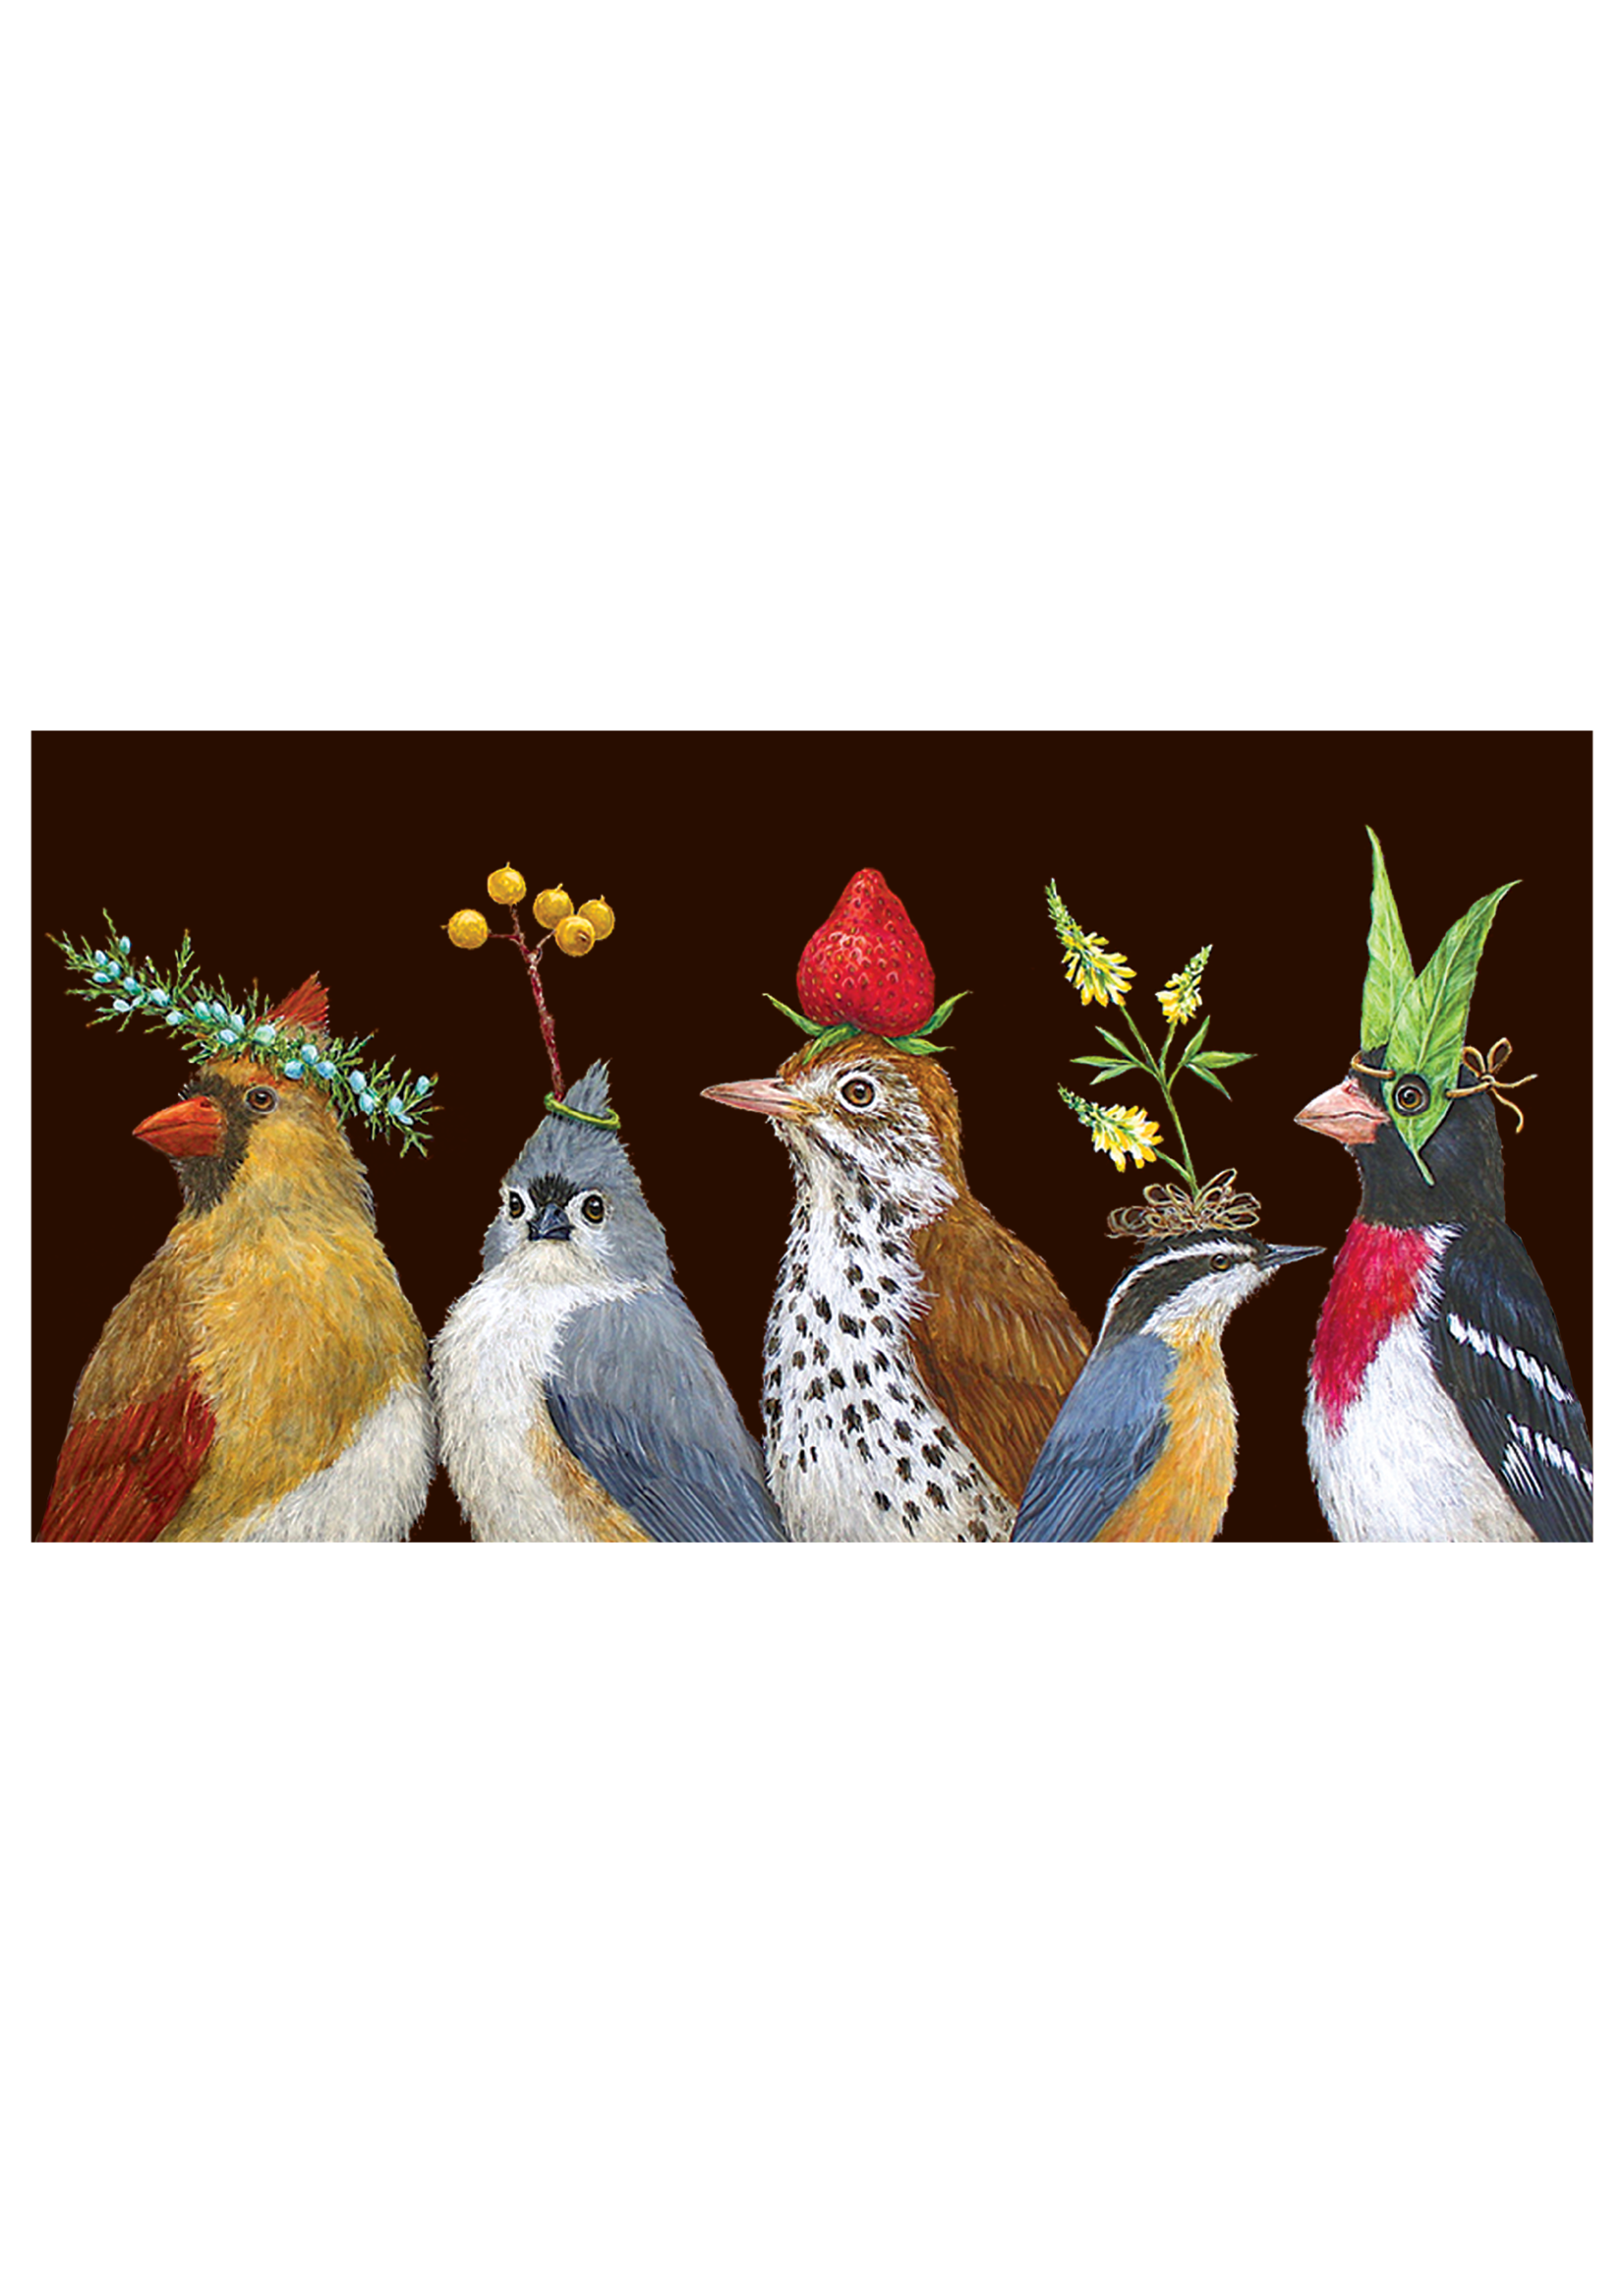 Hester & Cook Card - Party at the Feeder